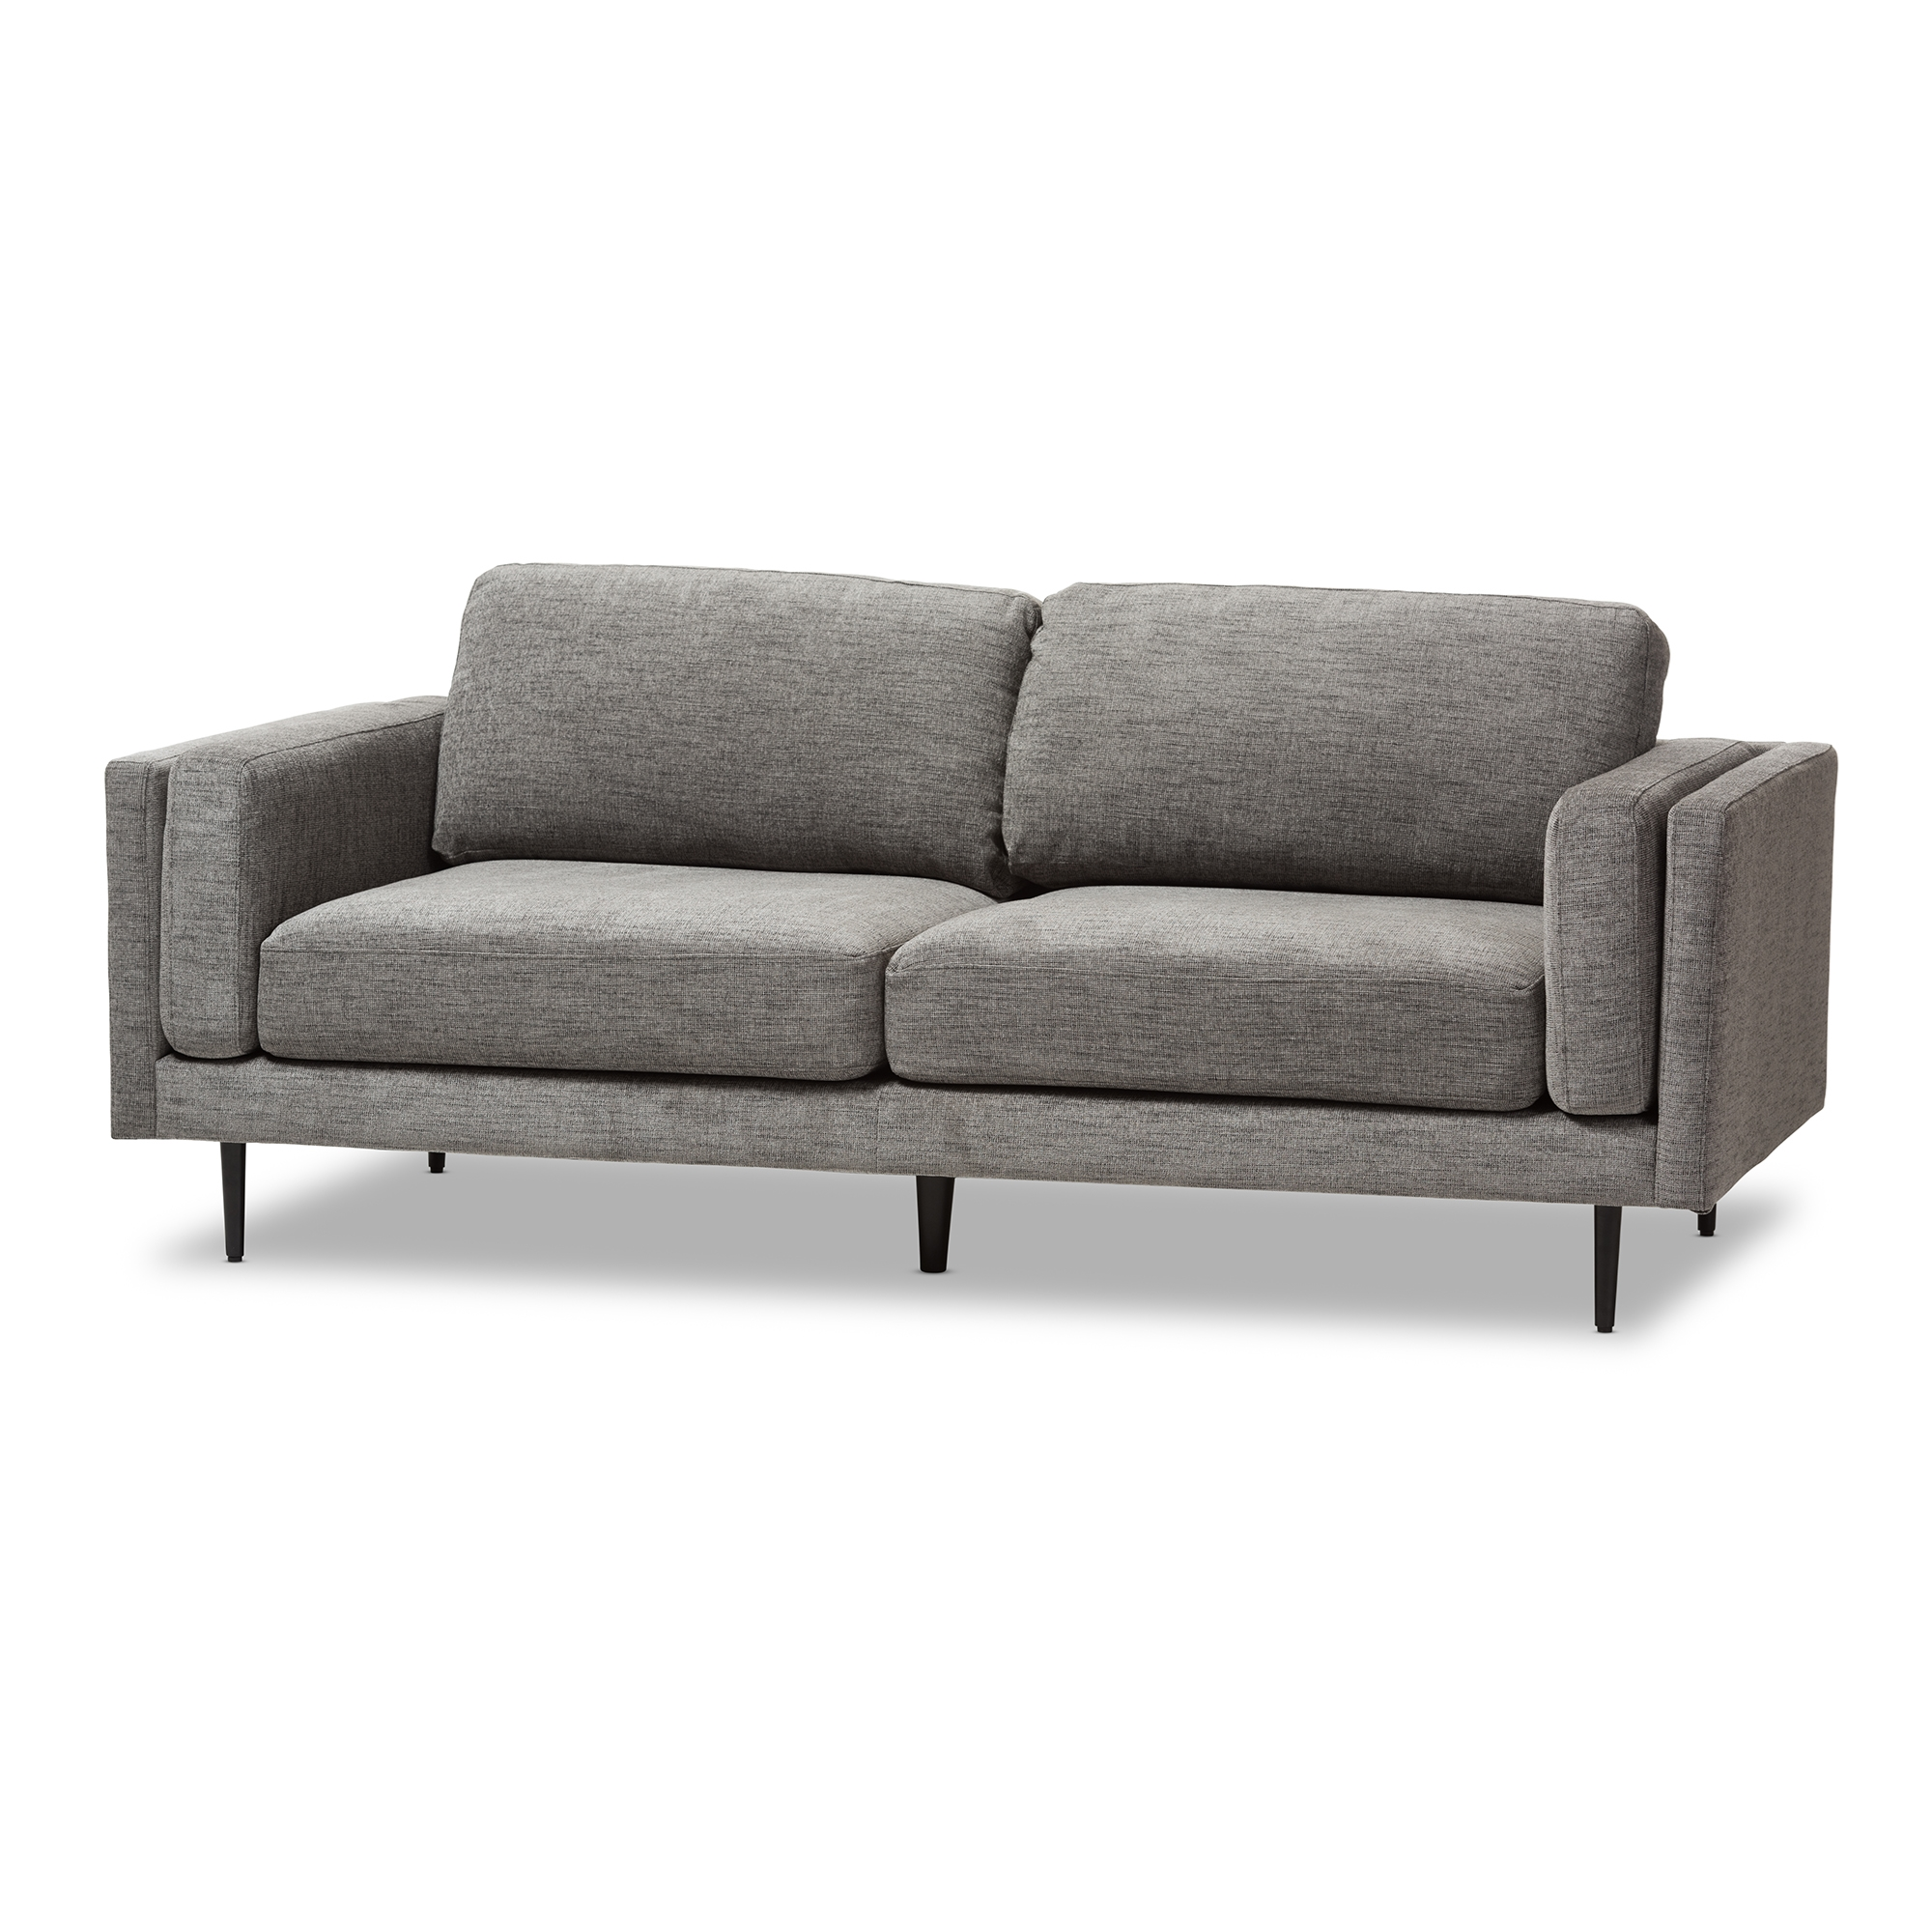 Baxton Studio Brittany Retro Mid Century Modern Grey Fabric Upholstered  3 Seater Loveseat